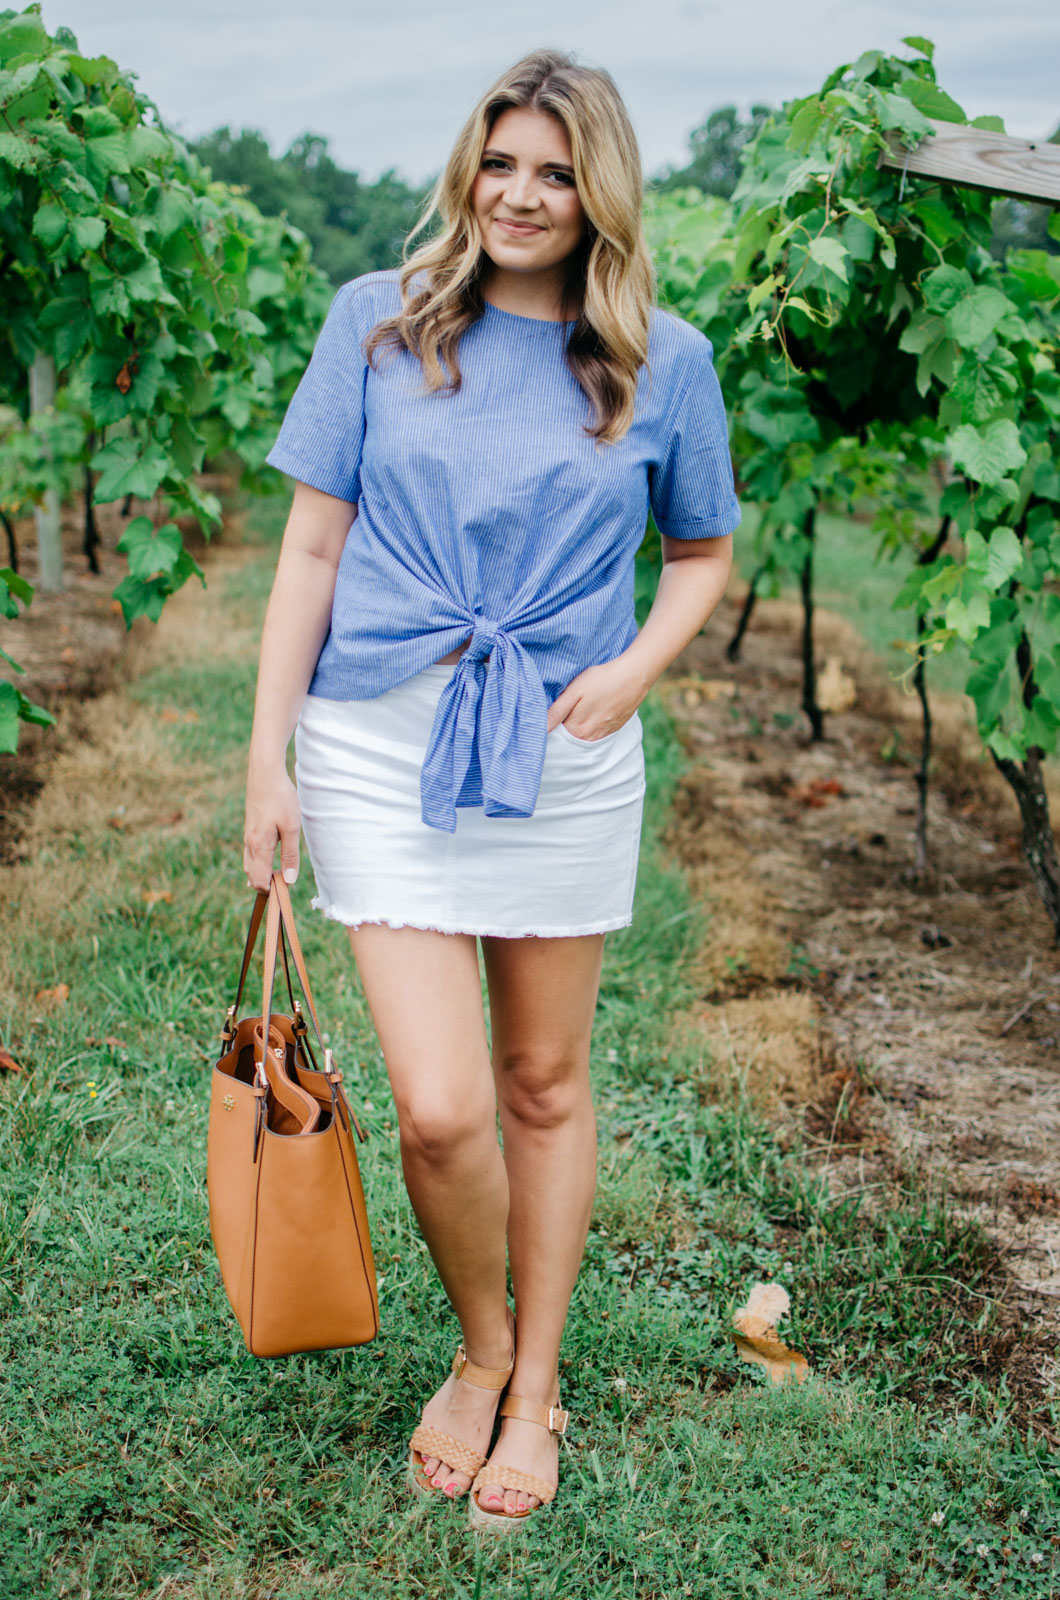 cute summer outfit - tie front top with white denim mini skirt | Want more cute Summer outfits? Head to bylaurenm.com!